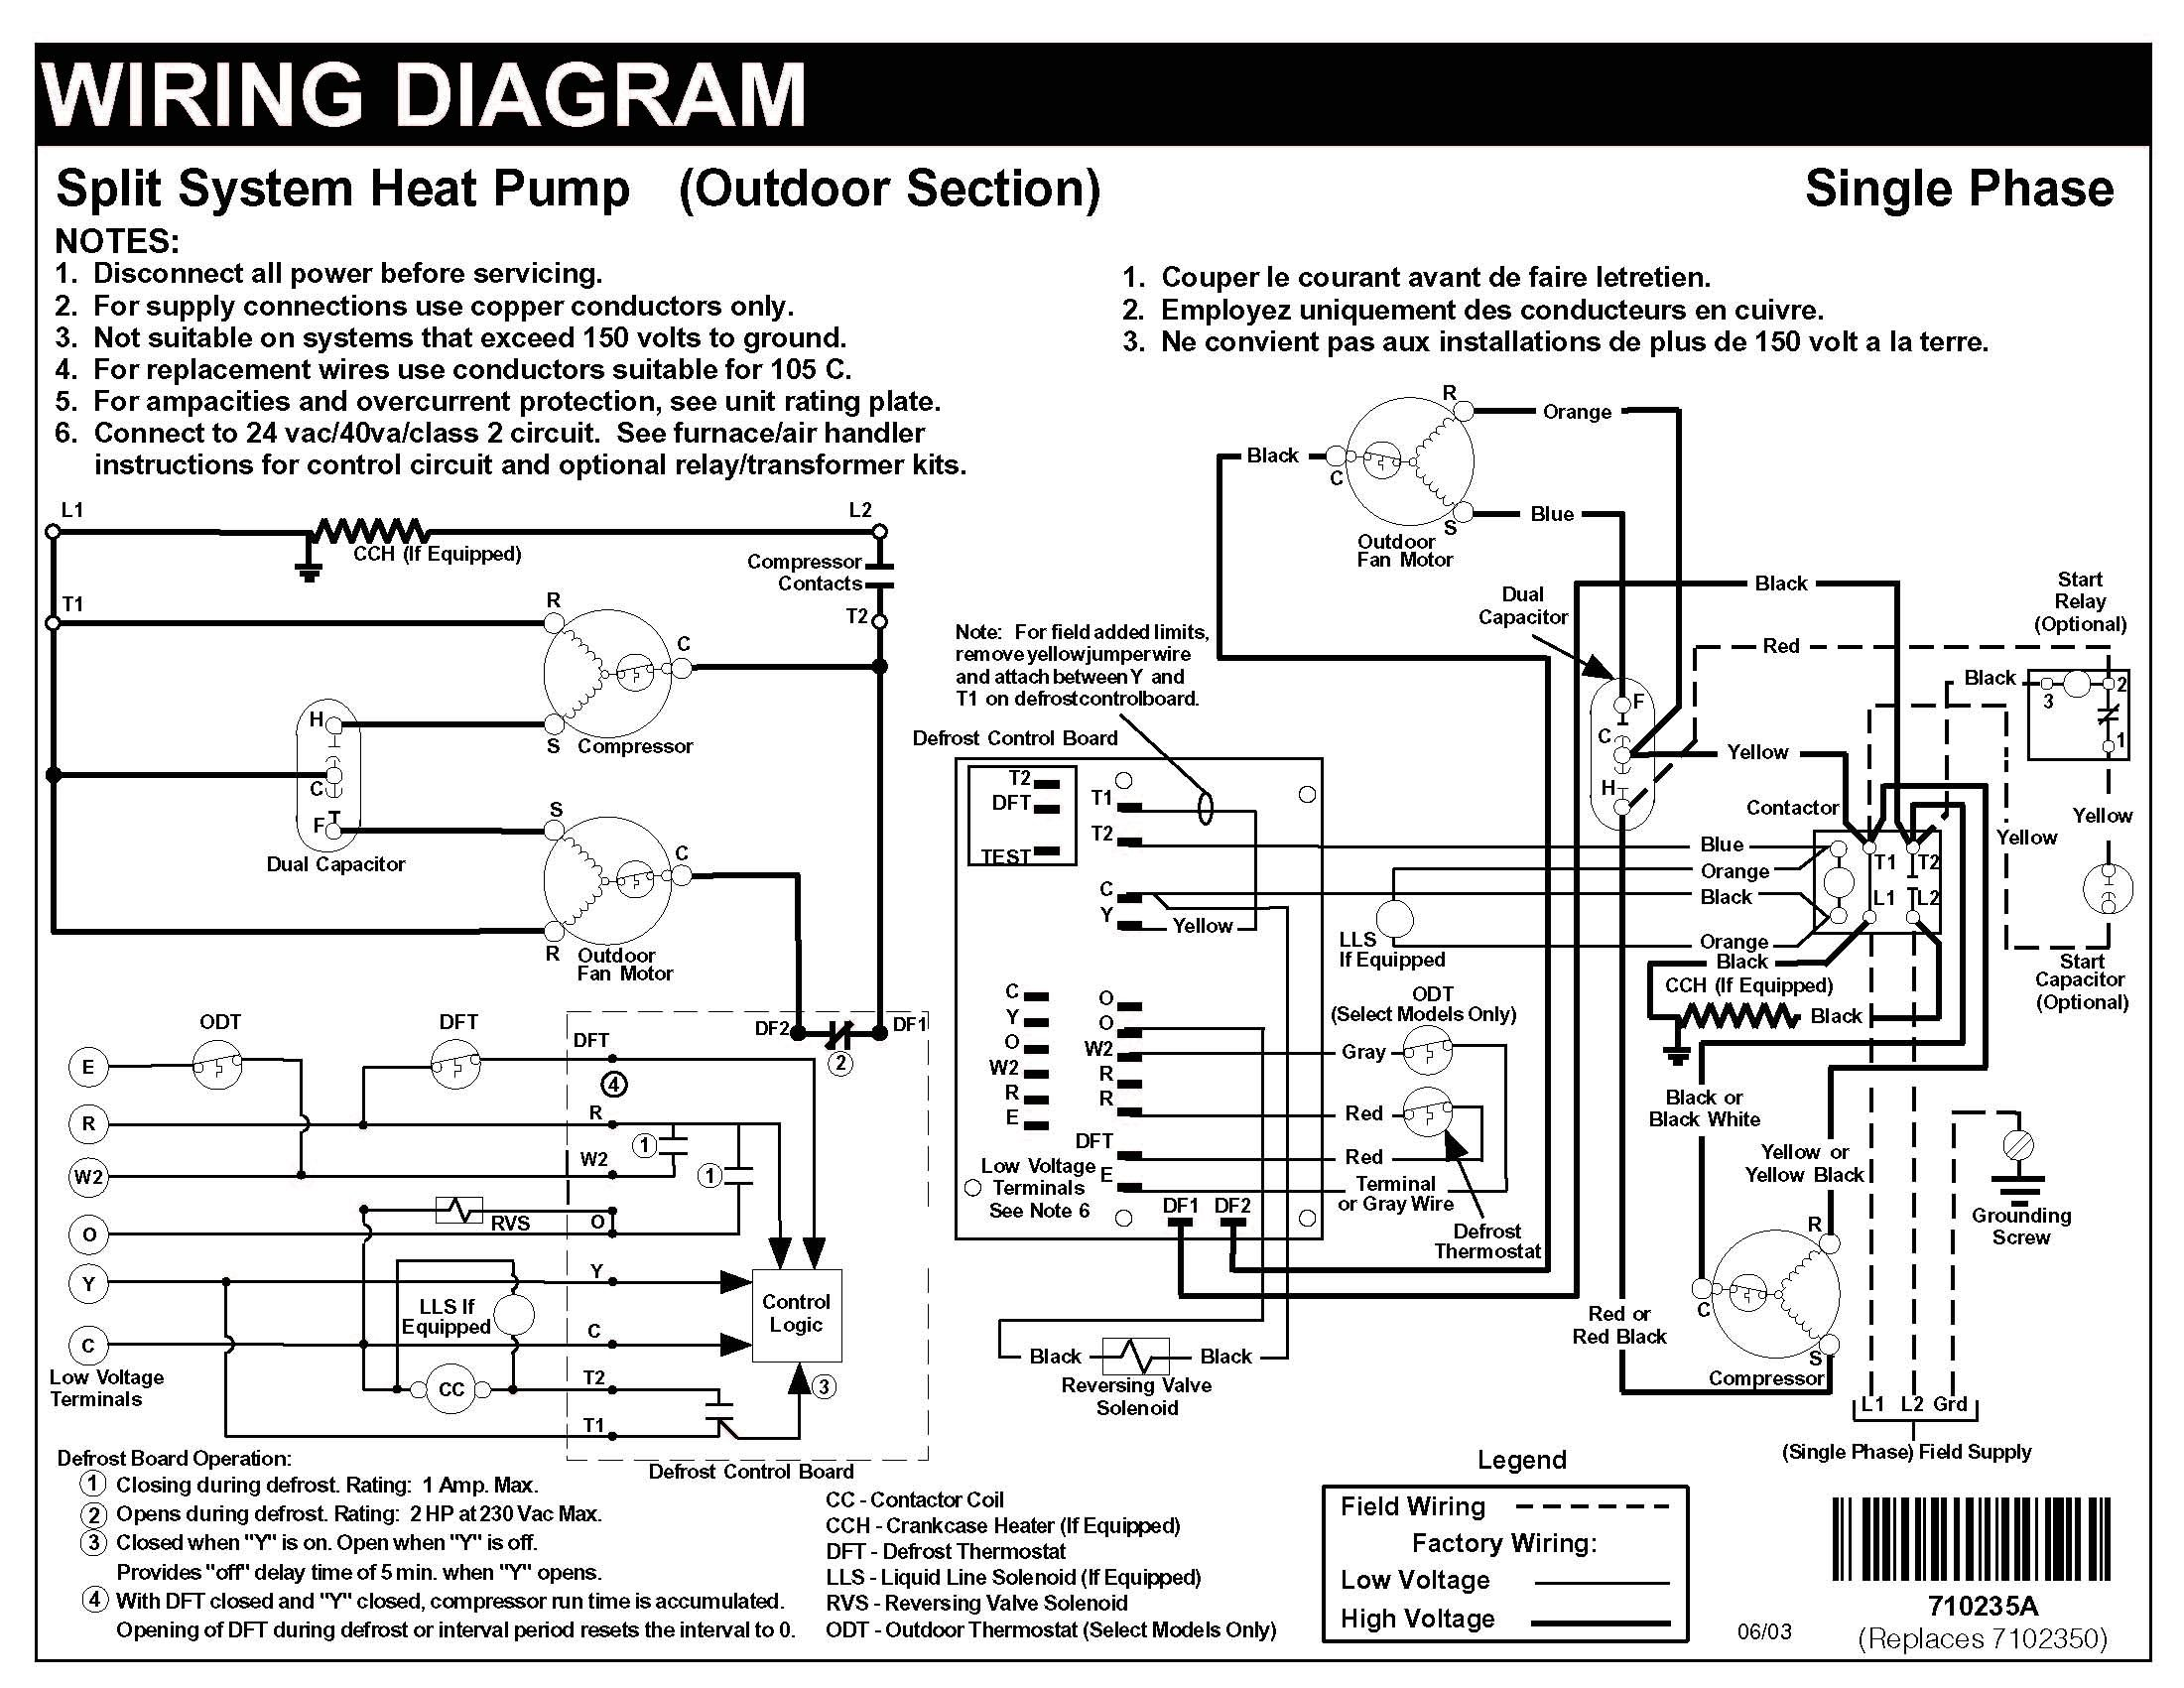 e08d295e6be2ee8be1bef44ac29add79 heat pumps residential heat pumps heat pump ratings lennox basic heat pump wiring diagram at gsmportal.co